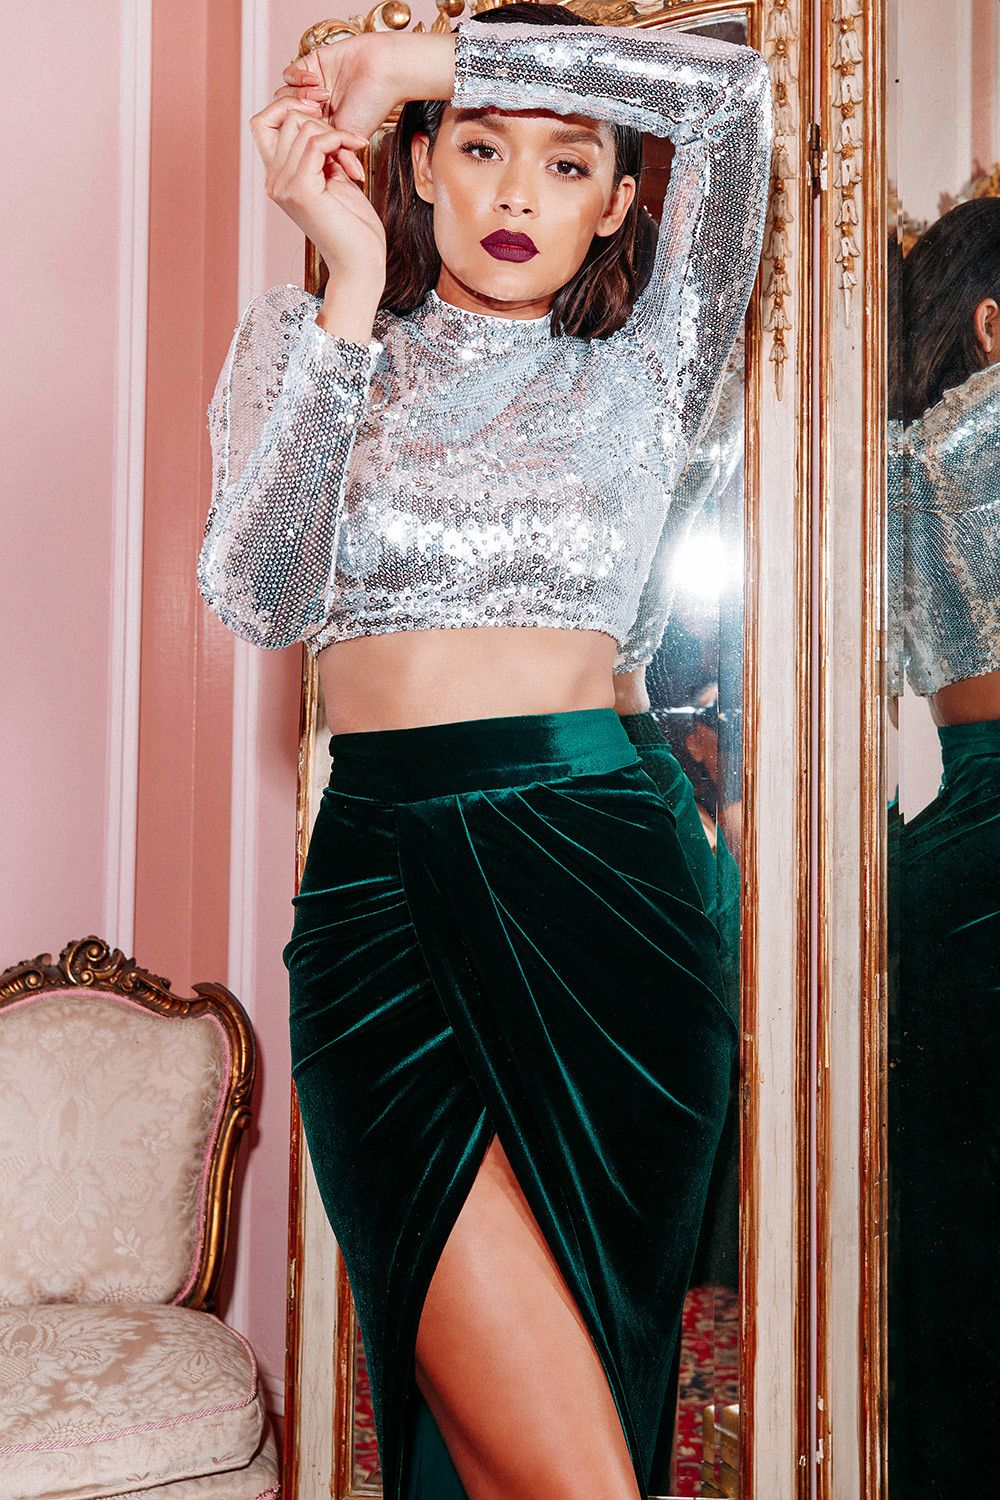 cb93c07e04c8b Love the idea of a velvet mermaid skirt and sequined crop top for both desi  and non-desi parties (good crossover pieces)